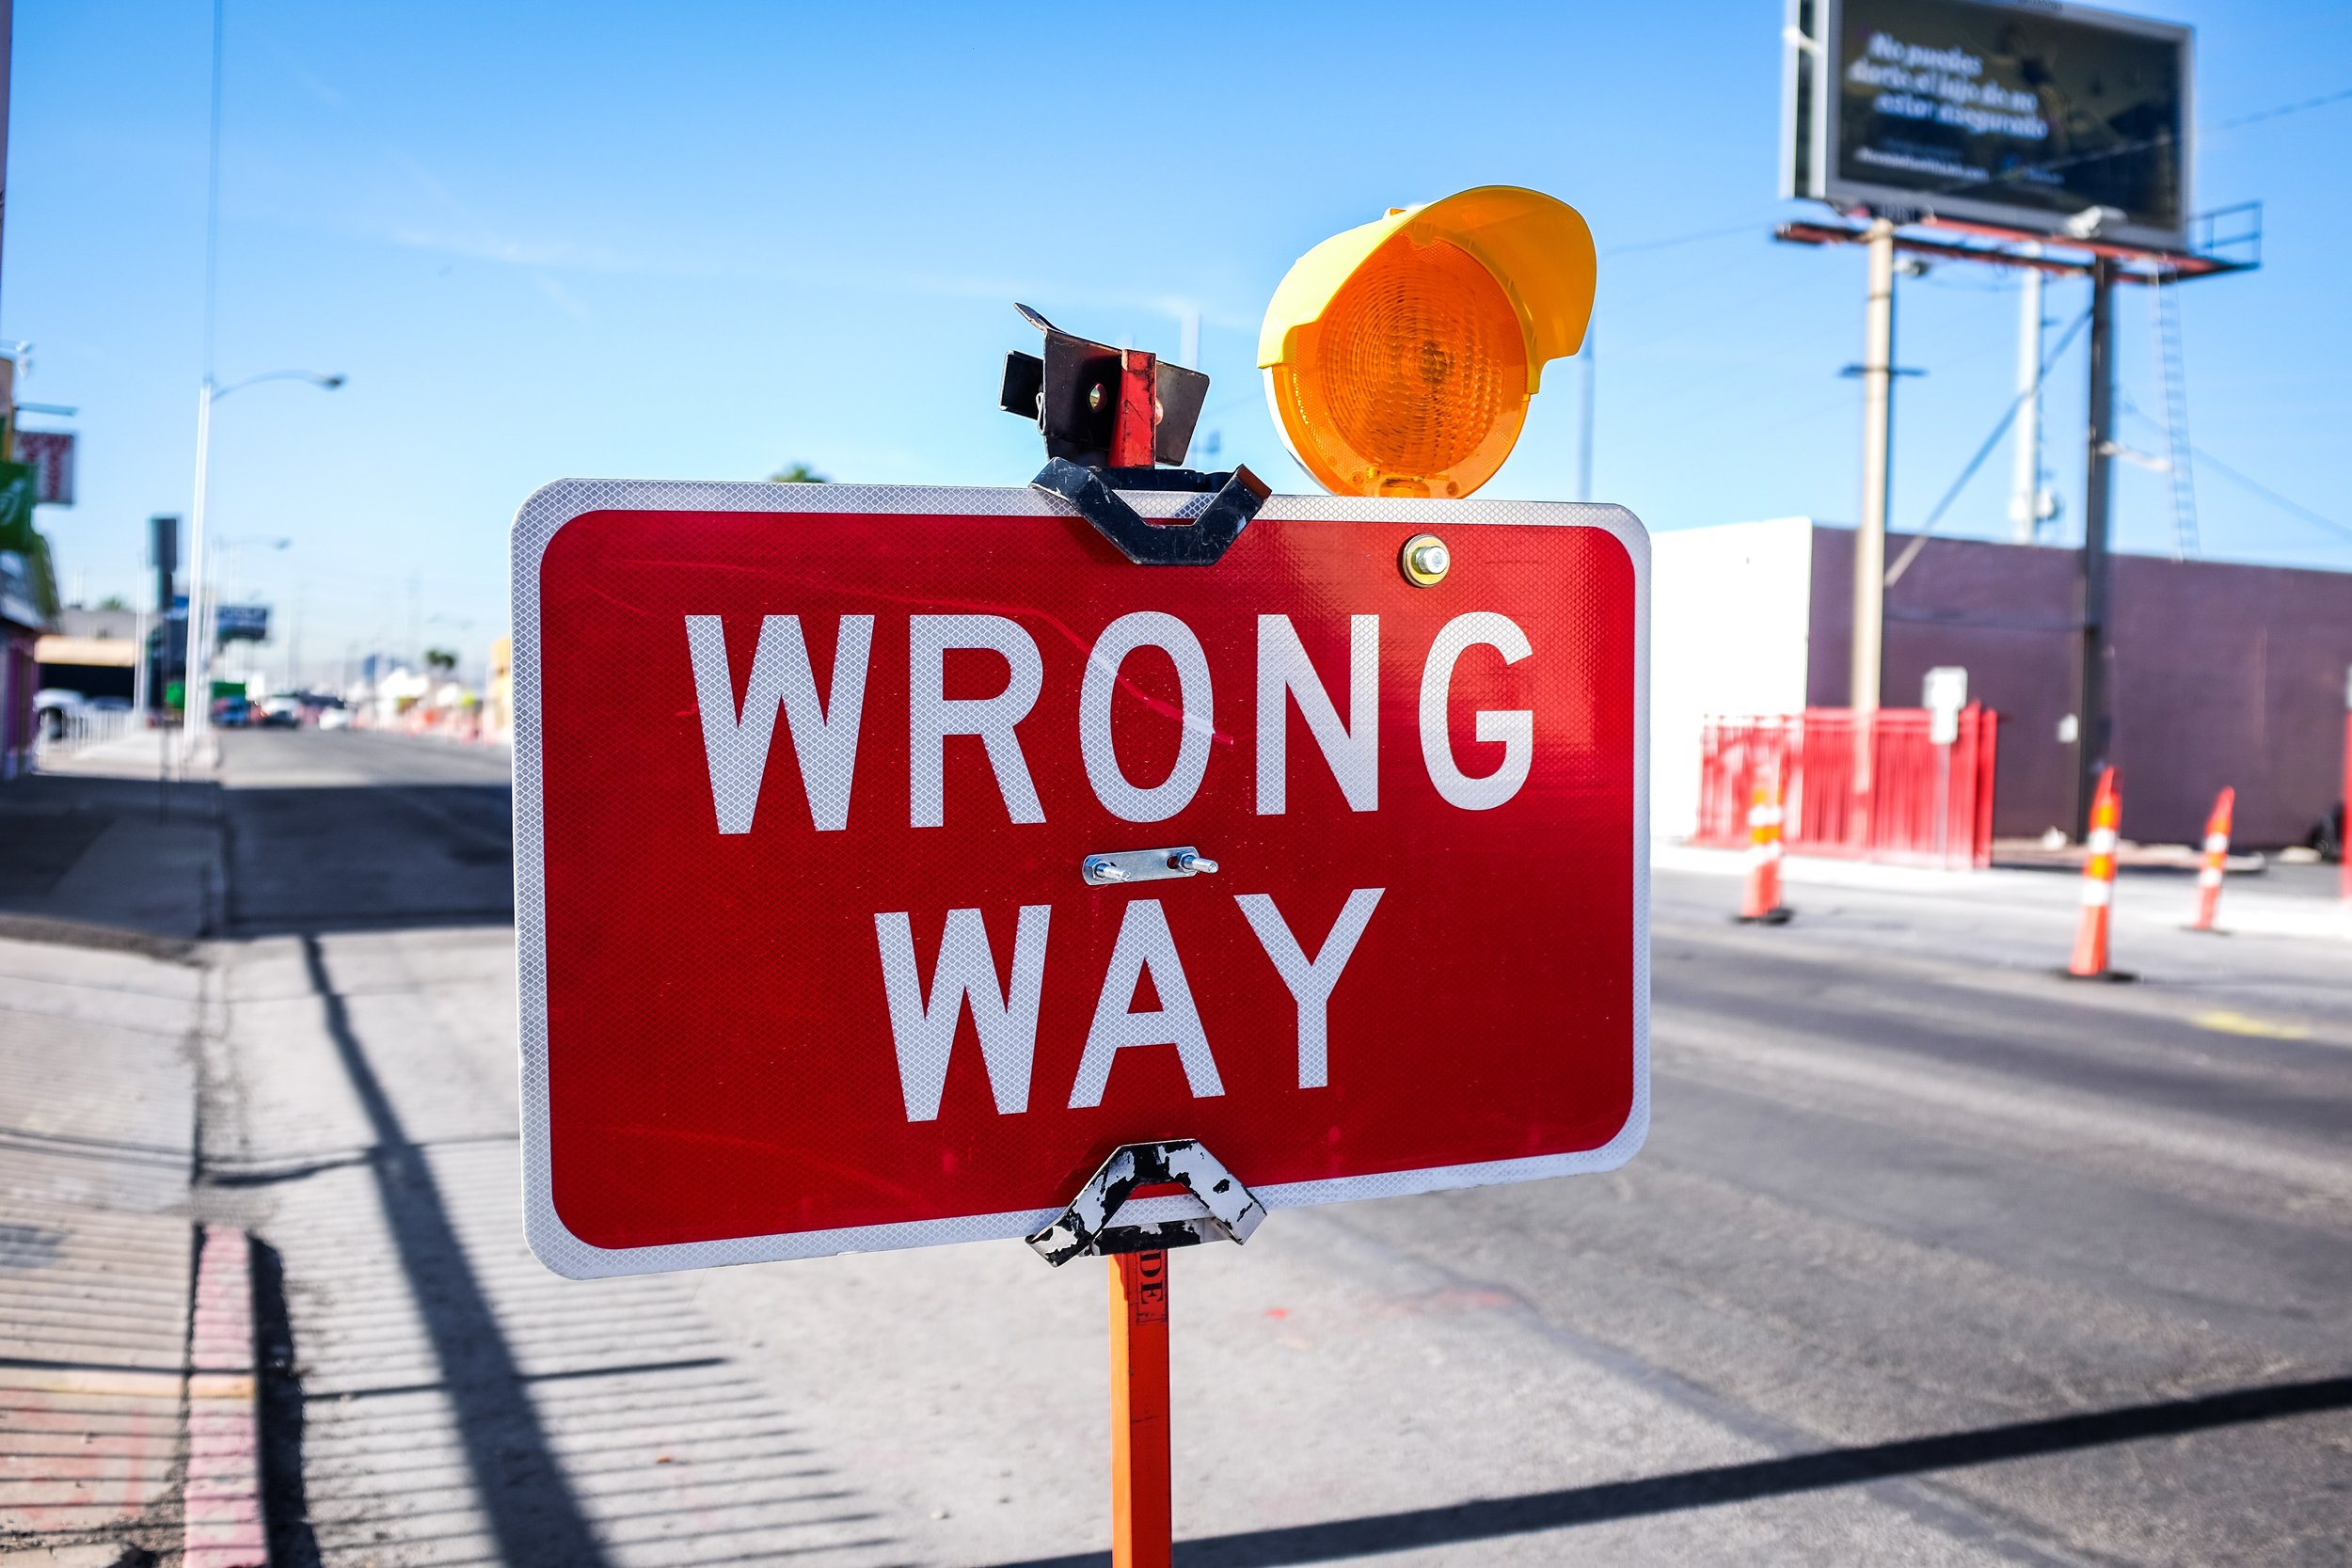 Wrong way sign in West Los Angeles